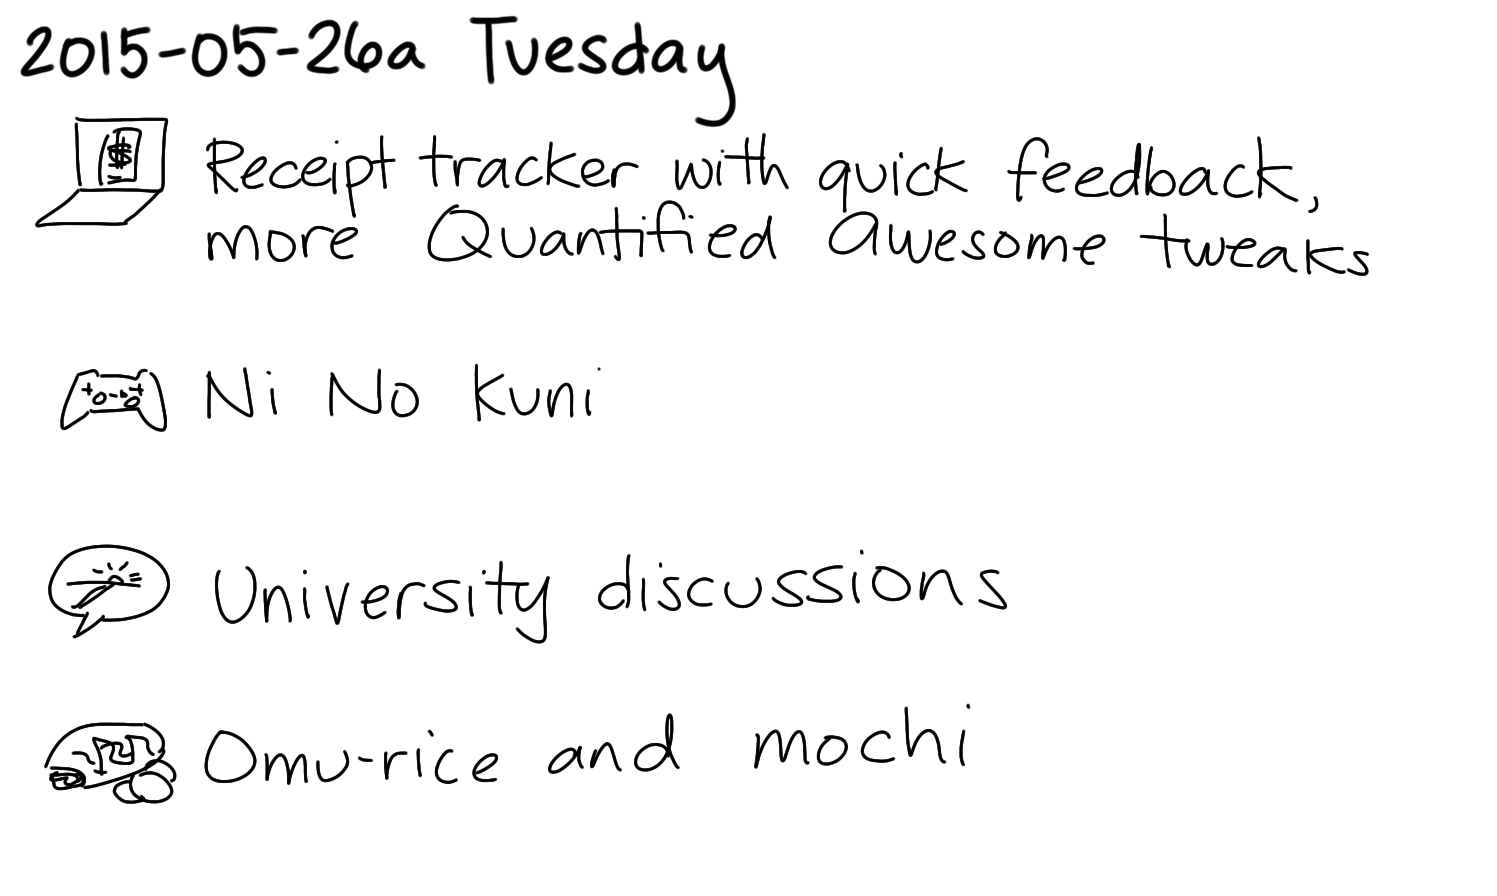 2015-05-26a Tuesday -- index card #journal.png